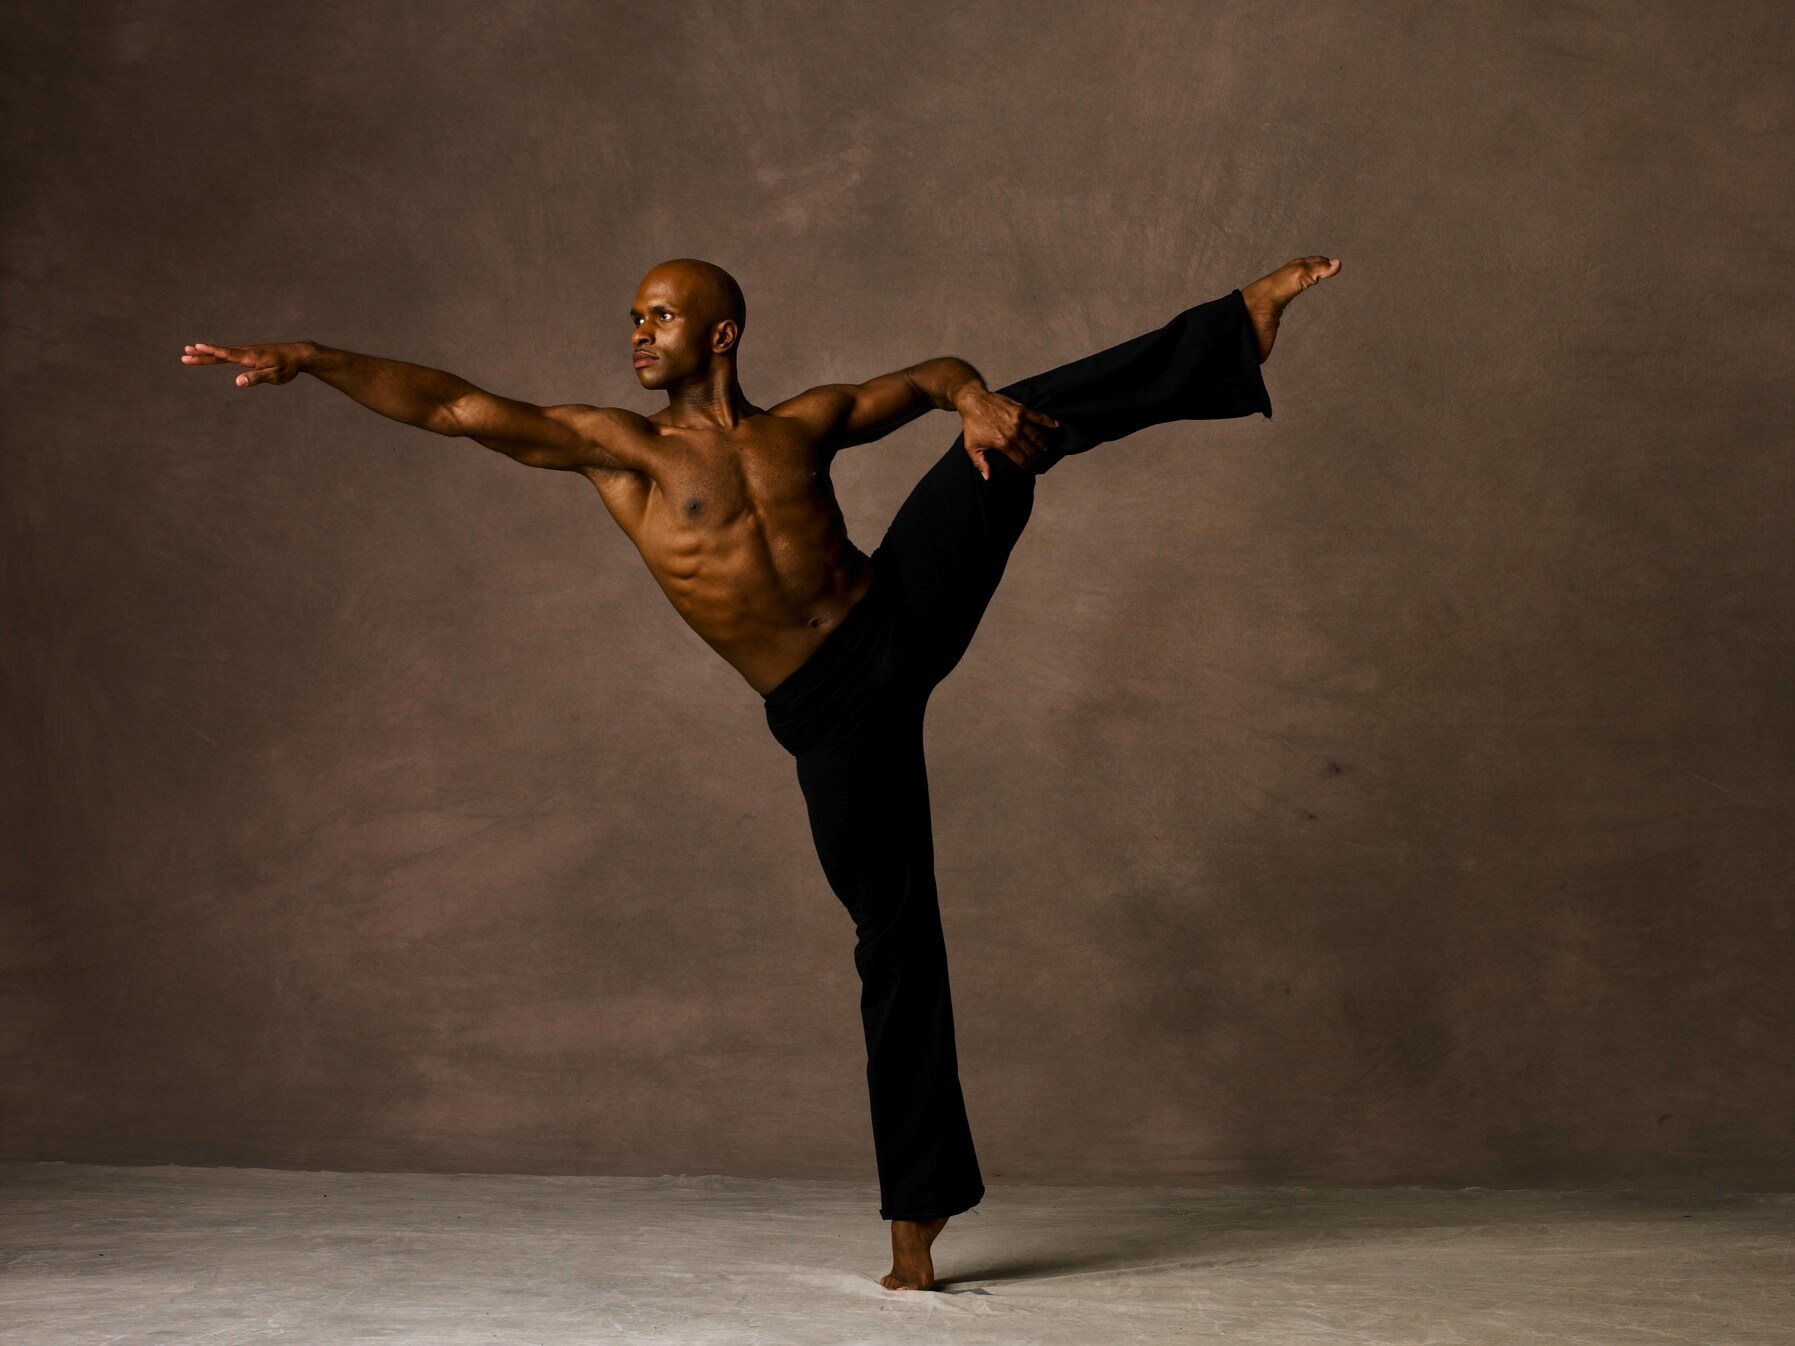 glenn allen sims, alvin ailey, alvin ailey american dance theater, the kennedy center, the kennedy center for the performing arts, yumiko, yumiko dance wear, rebecca king ferraro, michael sean breeden, miami city ballet dancers, professional dancers, professional ballet dancer, modern dance, modern dancers, master class, ballet class, modern class, Kennedy Center Education,